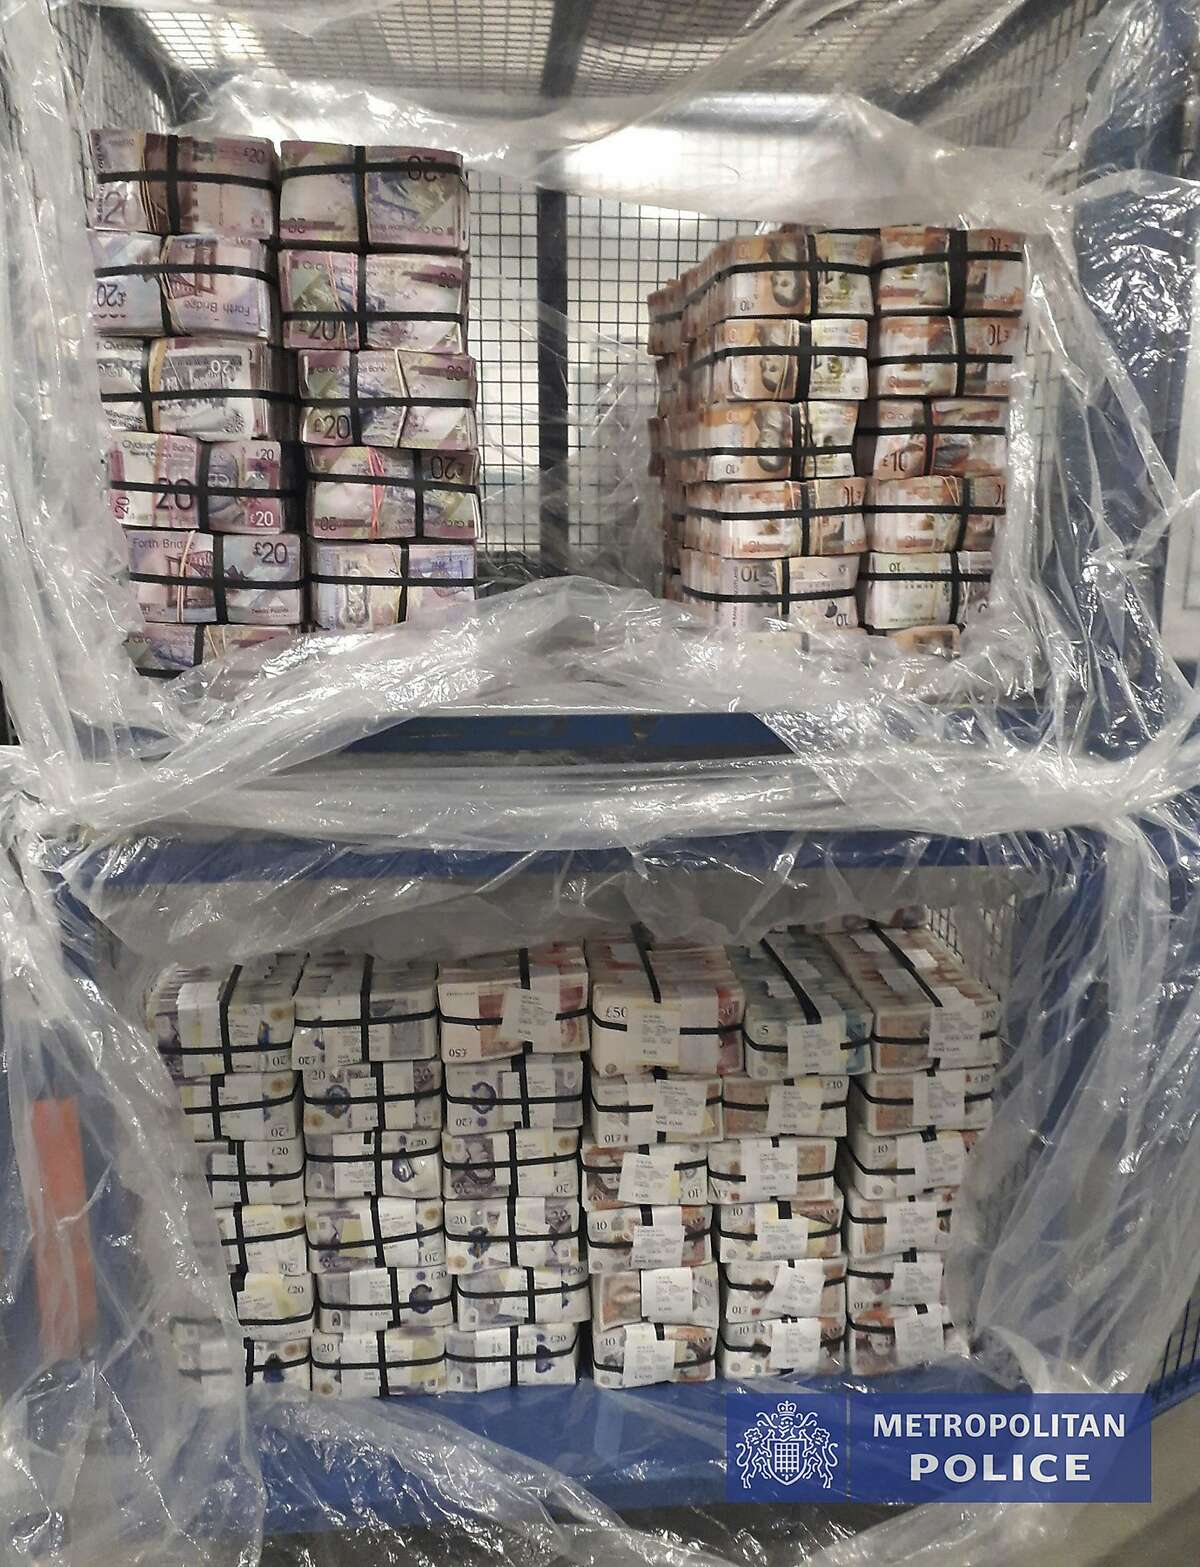 In this photo issued Thursday July 2, 2020, by the London Metropolitan Police showing cash worth 5.1 million pounds, seized in Operation Venetic, an investigation on Encrochat, a military-grade encrypted communication system used by organised criminals trading in drugs and guns. According to information released by police authorities, officers in the UK had arrested 307 suspects, recovered 106 Encrochat devices and seized many millions in currency, with many thousands of officers involved in a massive international sting. (Metropolitan Police via AP)